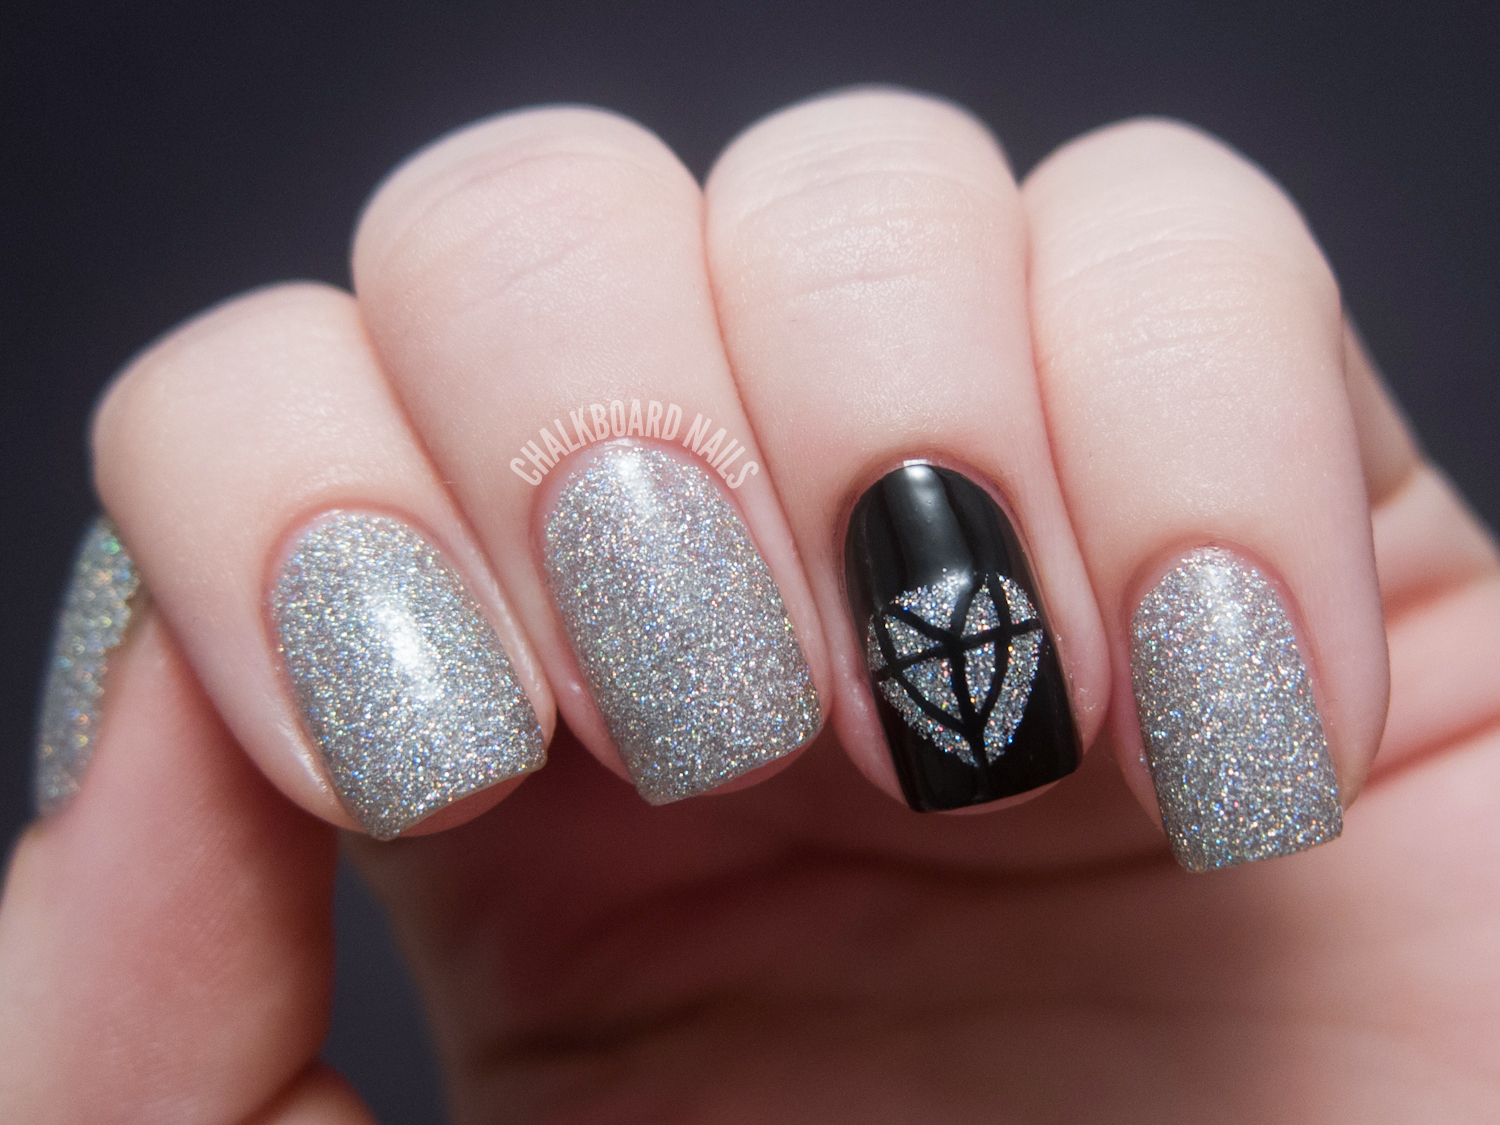 31DC2012: Day 22, Inspired by a Song | Chalkboard Nails | Nail Art Blog